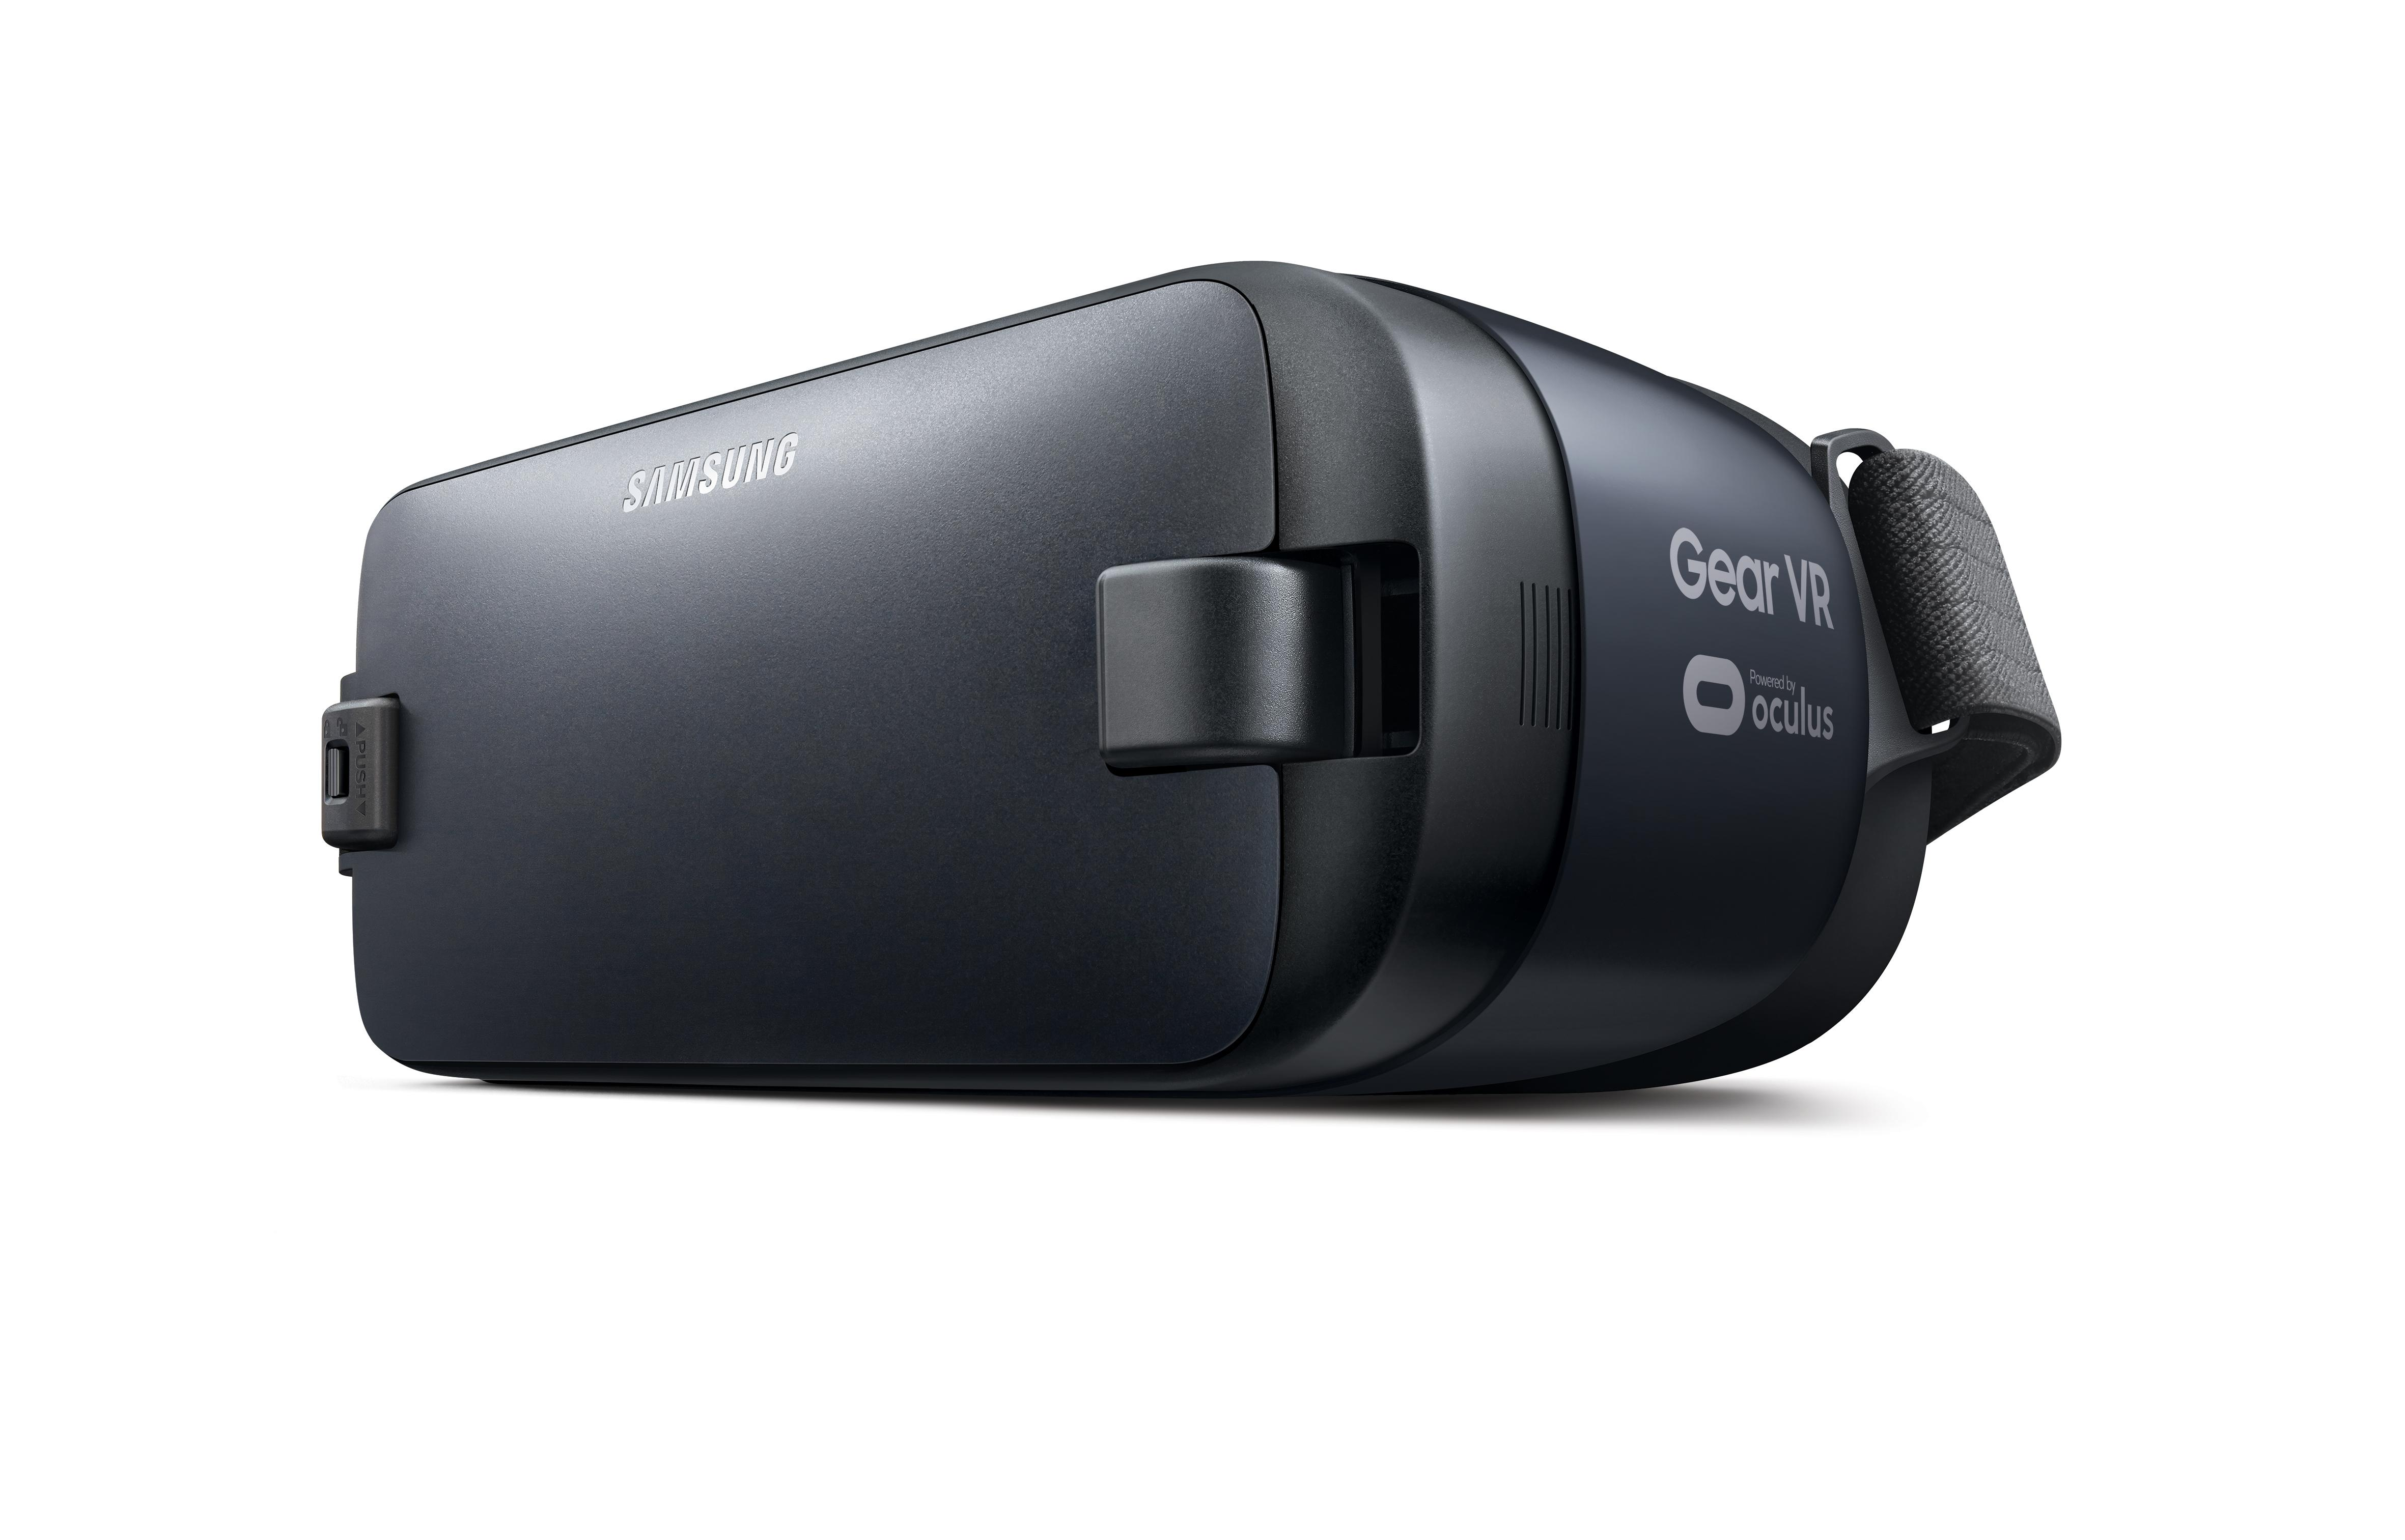 Amazon.com: Samsung Gear VR (2016) - GS7s, Note 5, GS6s (US Version w/ Warranty - Discontinued ...